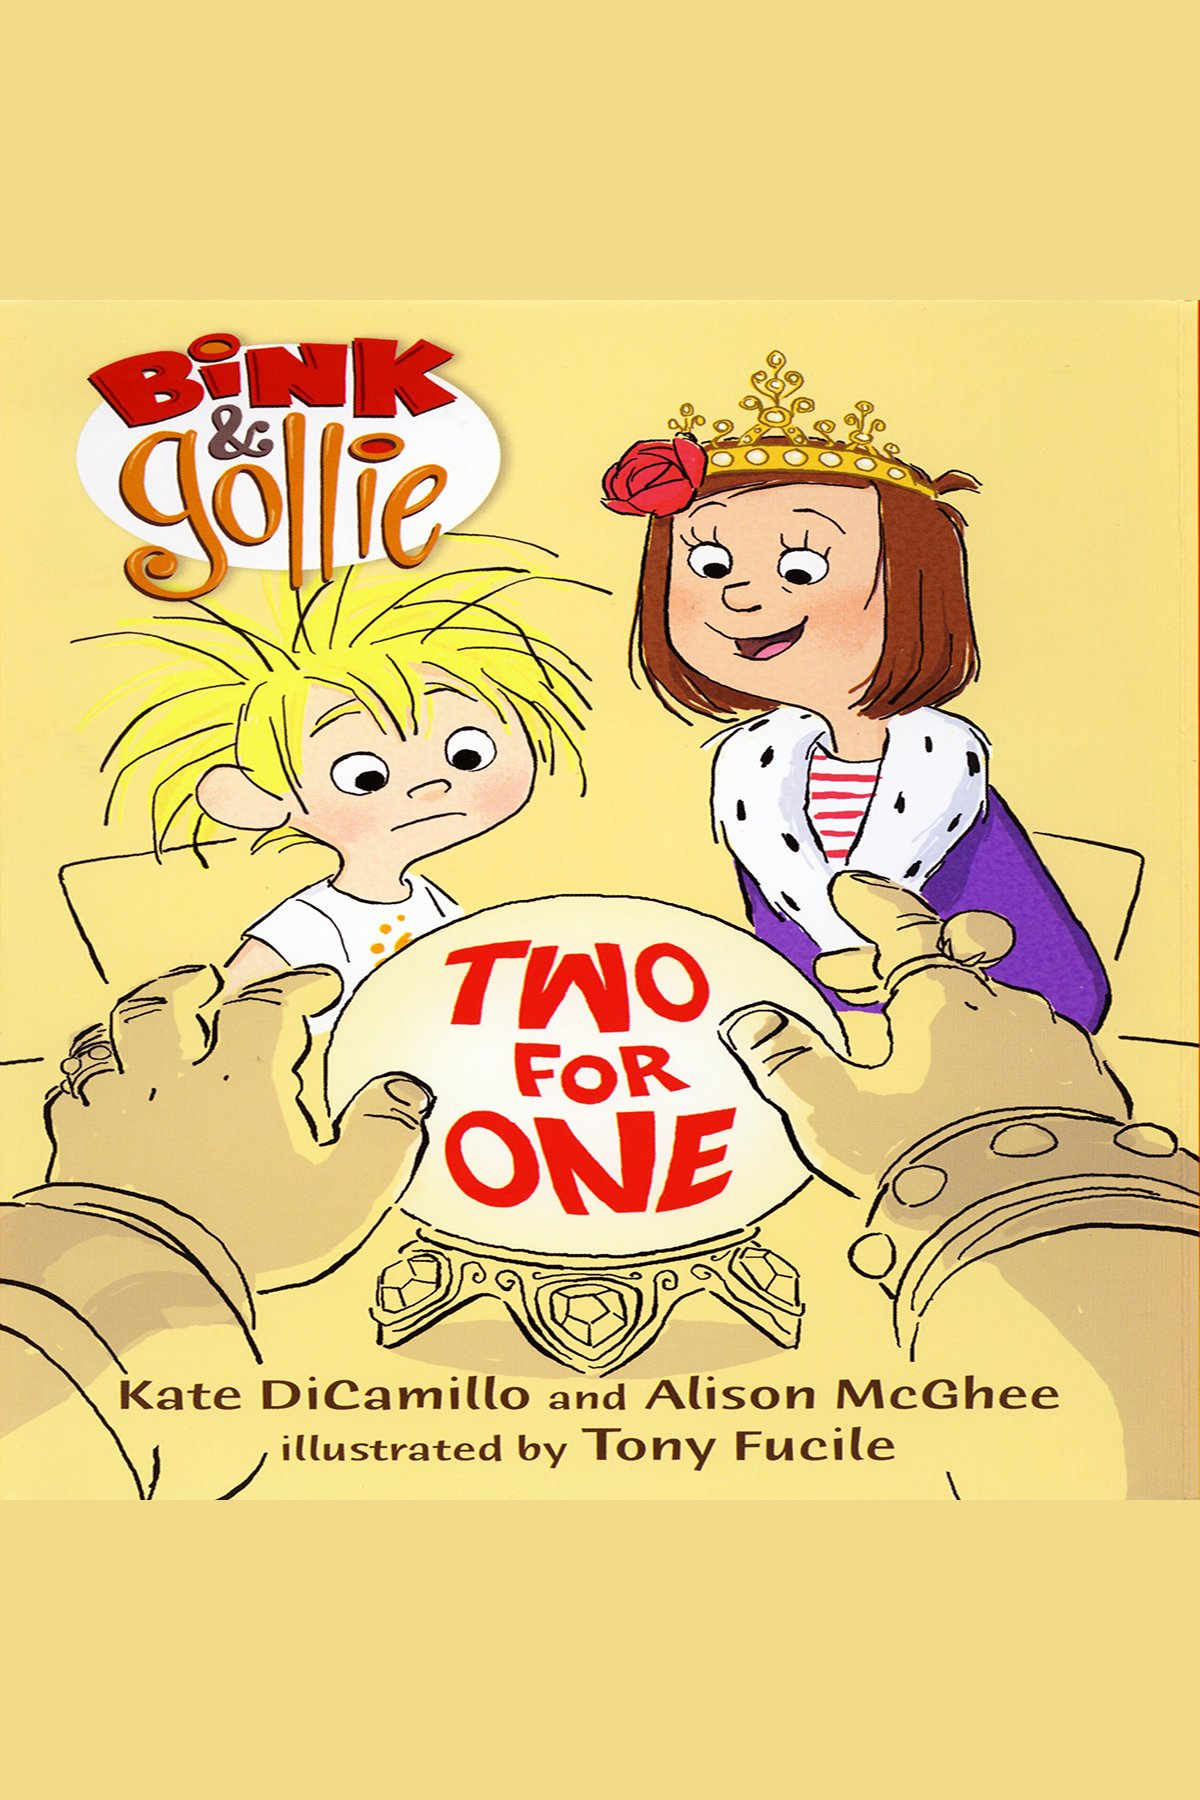 Bink & Gollie two for one cover image